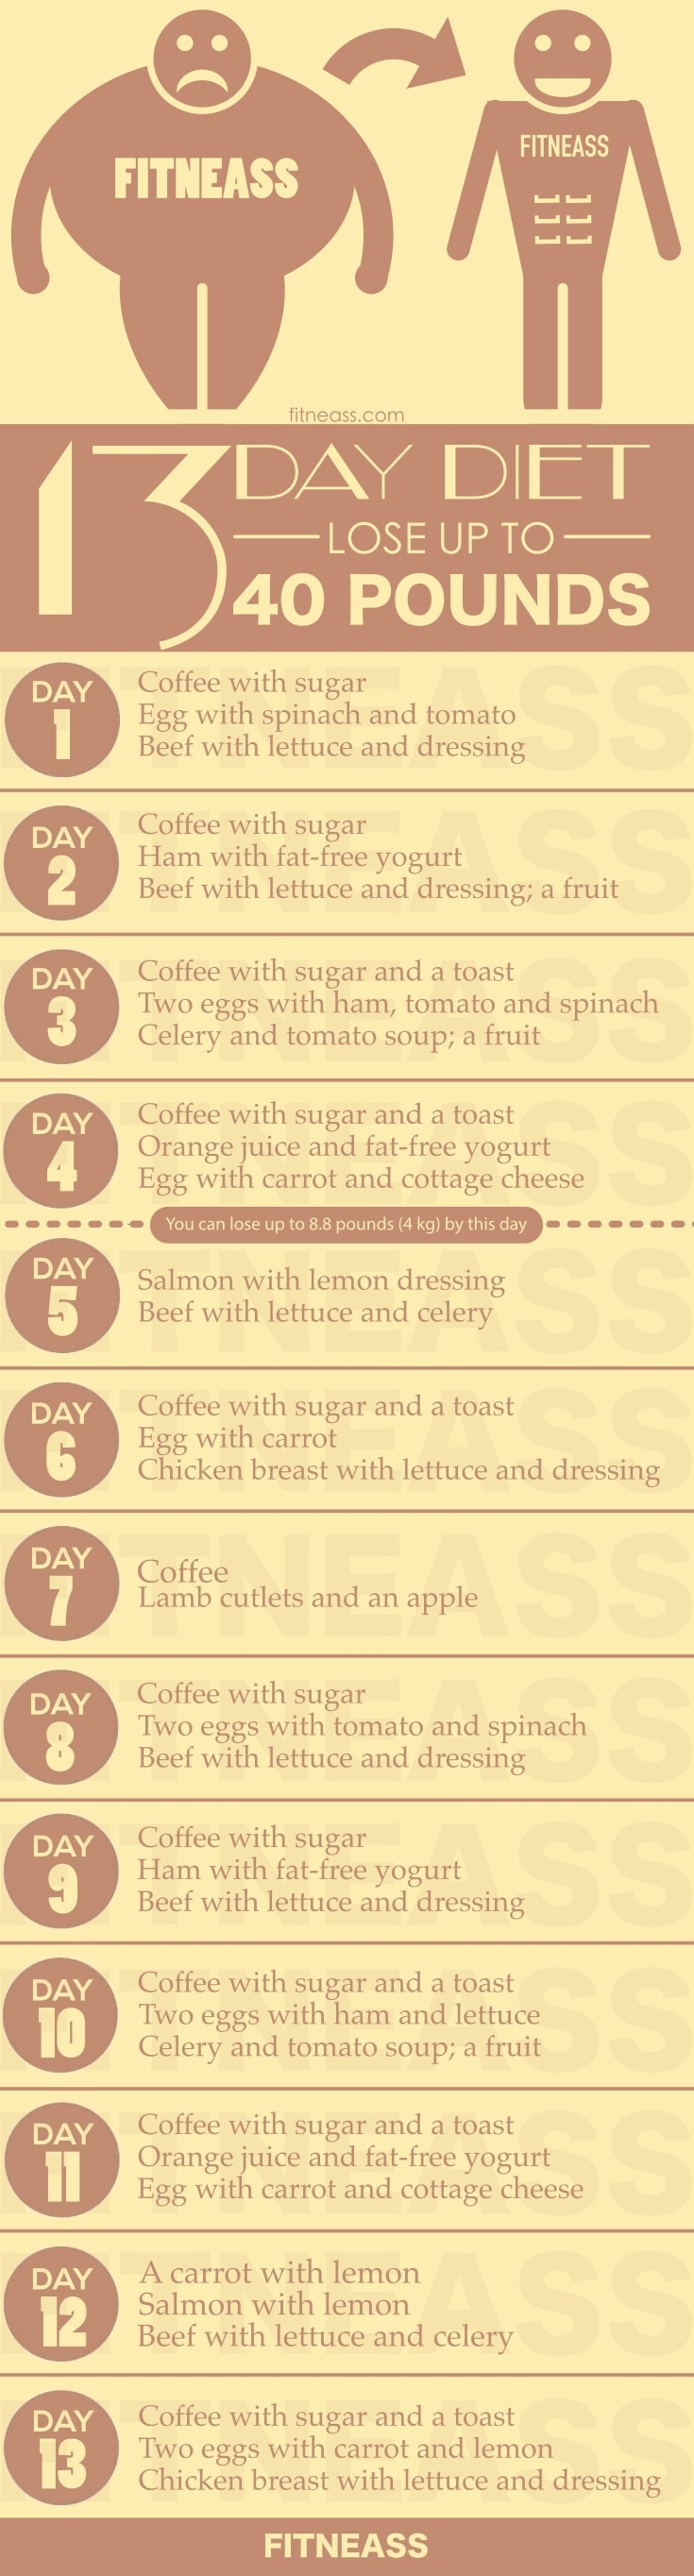 13-Day Diet To Lose Up To 40 Pounds